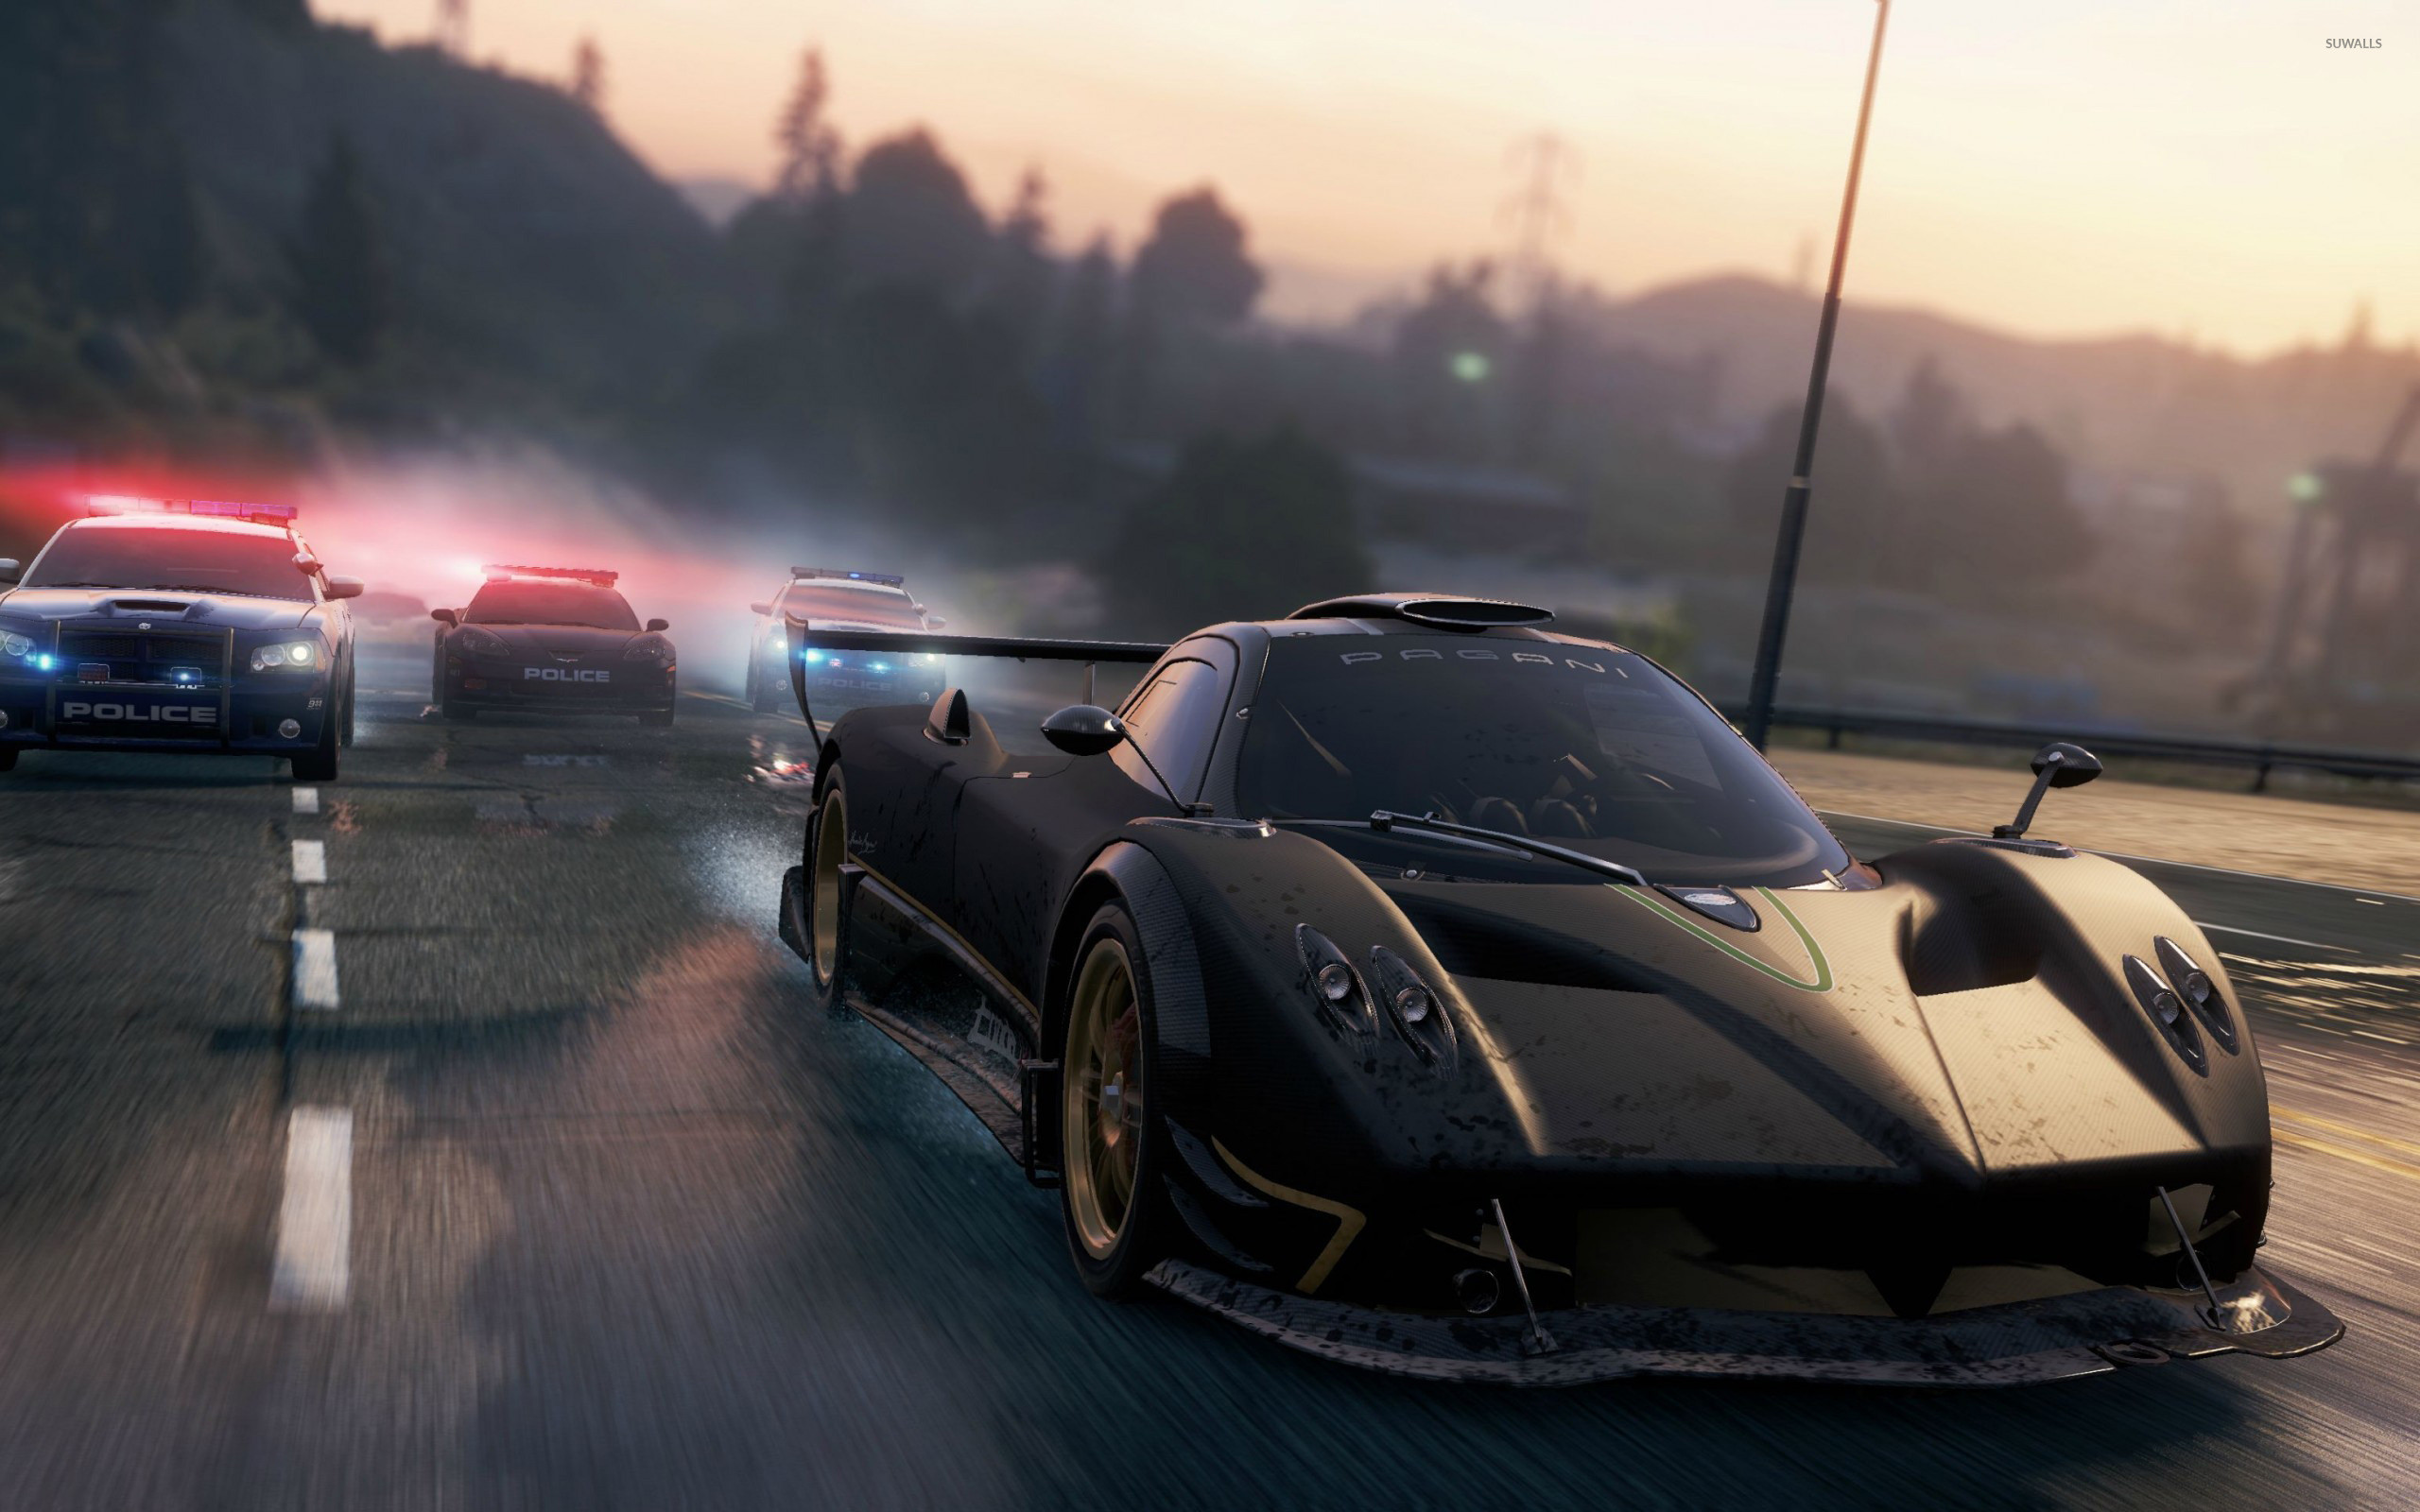 2560x1600 Pagani Zonda R chased in Need for Speed: Most Wanted wallpaper